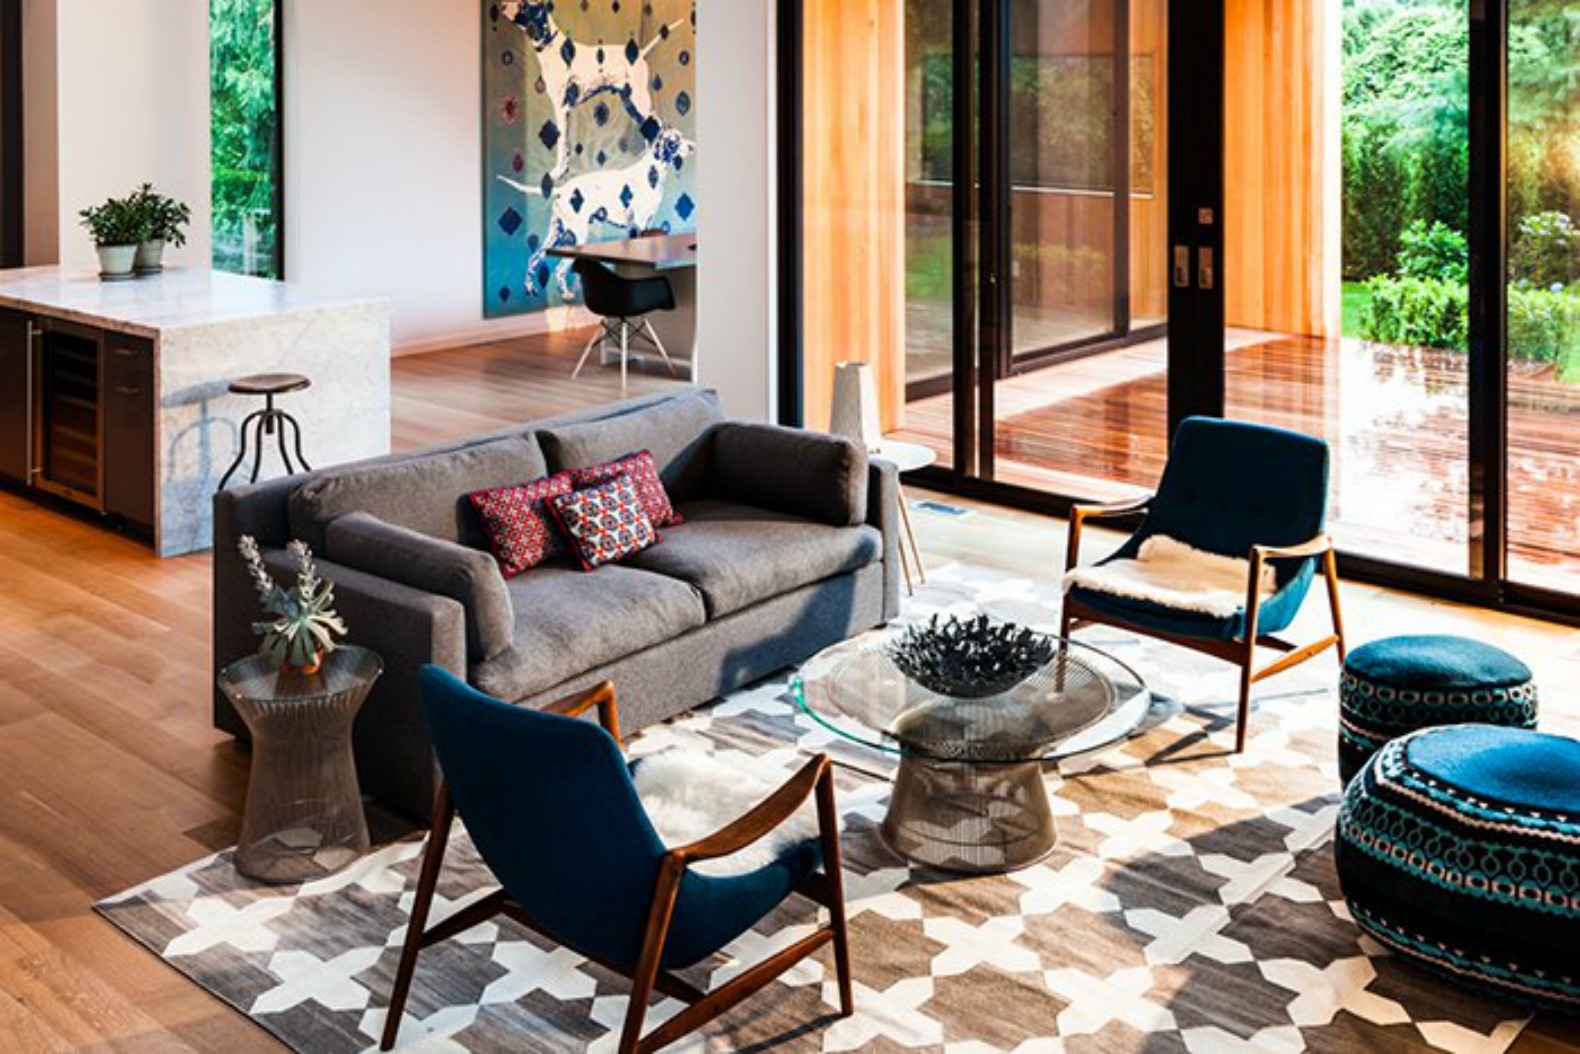 Playful retro-inspired makeover injects personality into a 1980s East Hampton home